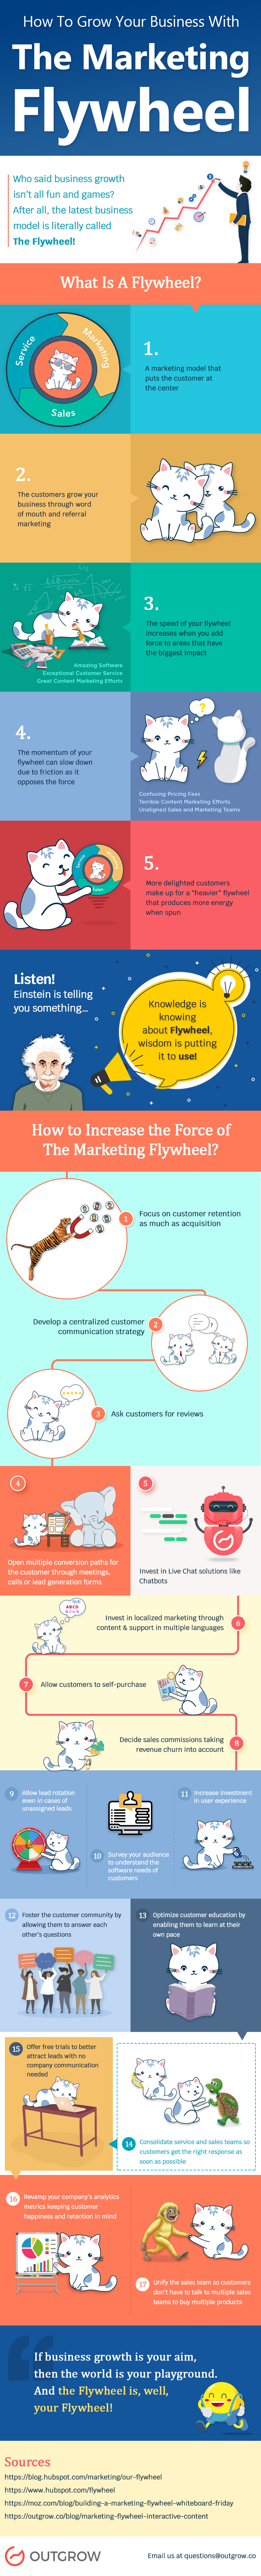 Infographic outlines the Flywheel business growth concept